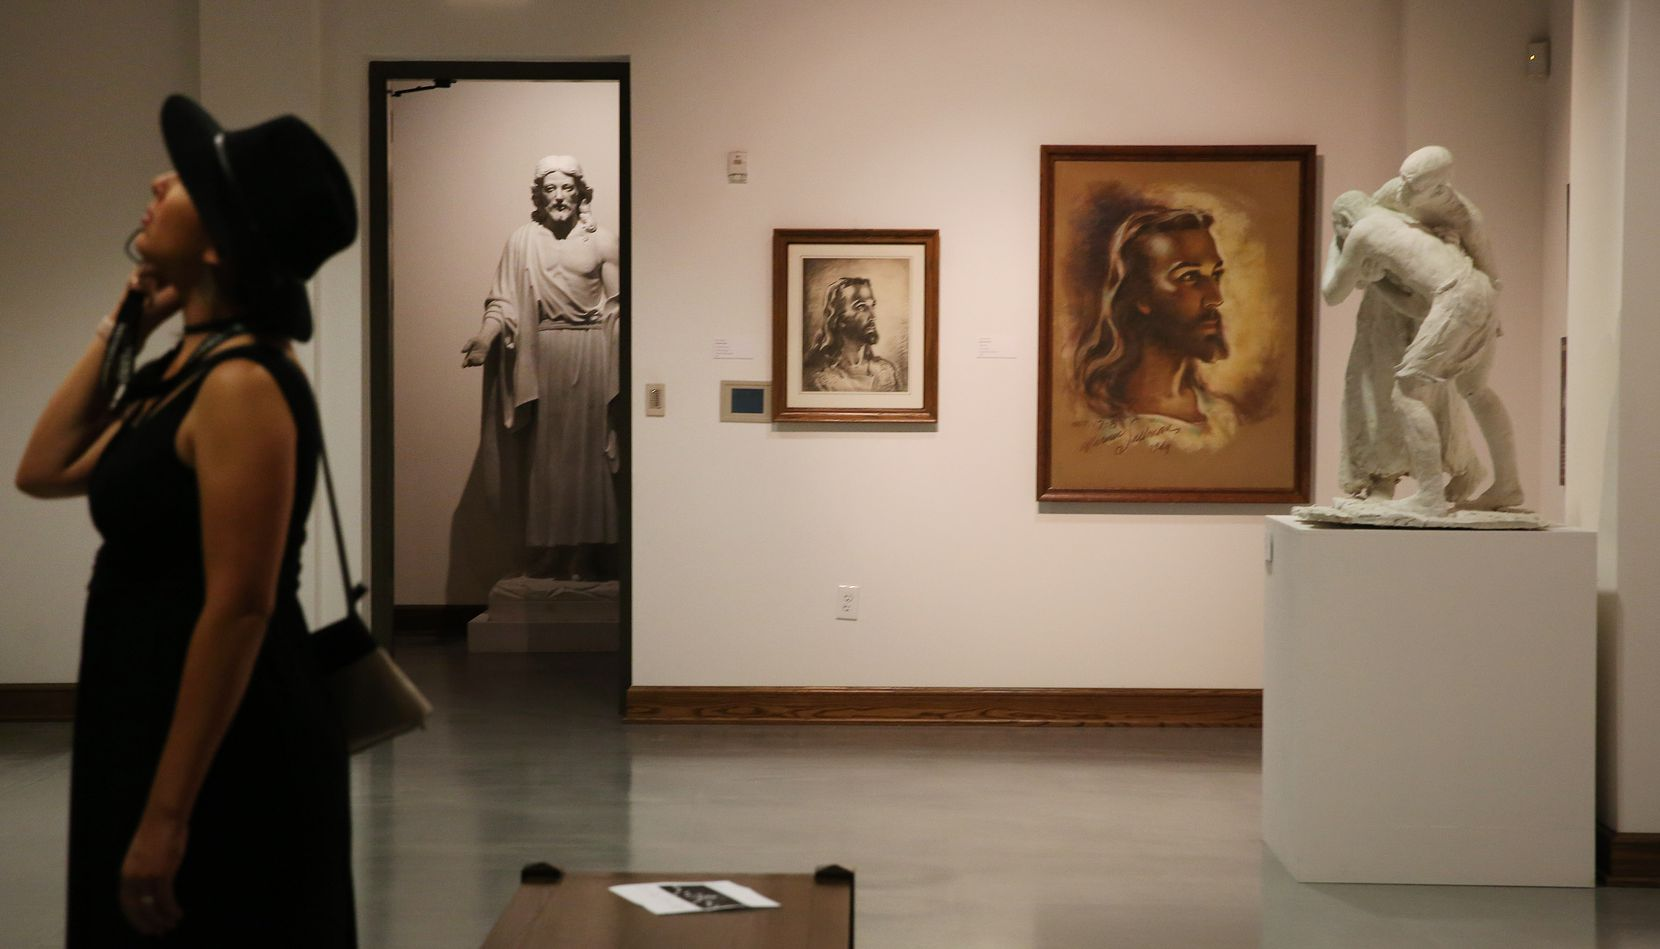 """The exhibit """"Faces of Christ"""" at the Museum of Biblical Art in Dallas, features the work of artist Warner Sallman, who painted the widely reproduced Head of Christ."""